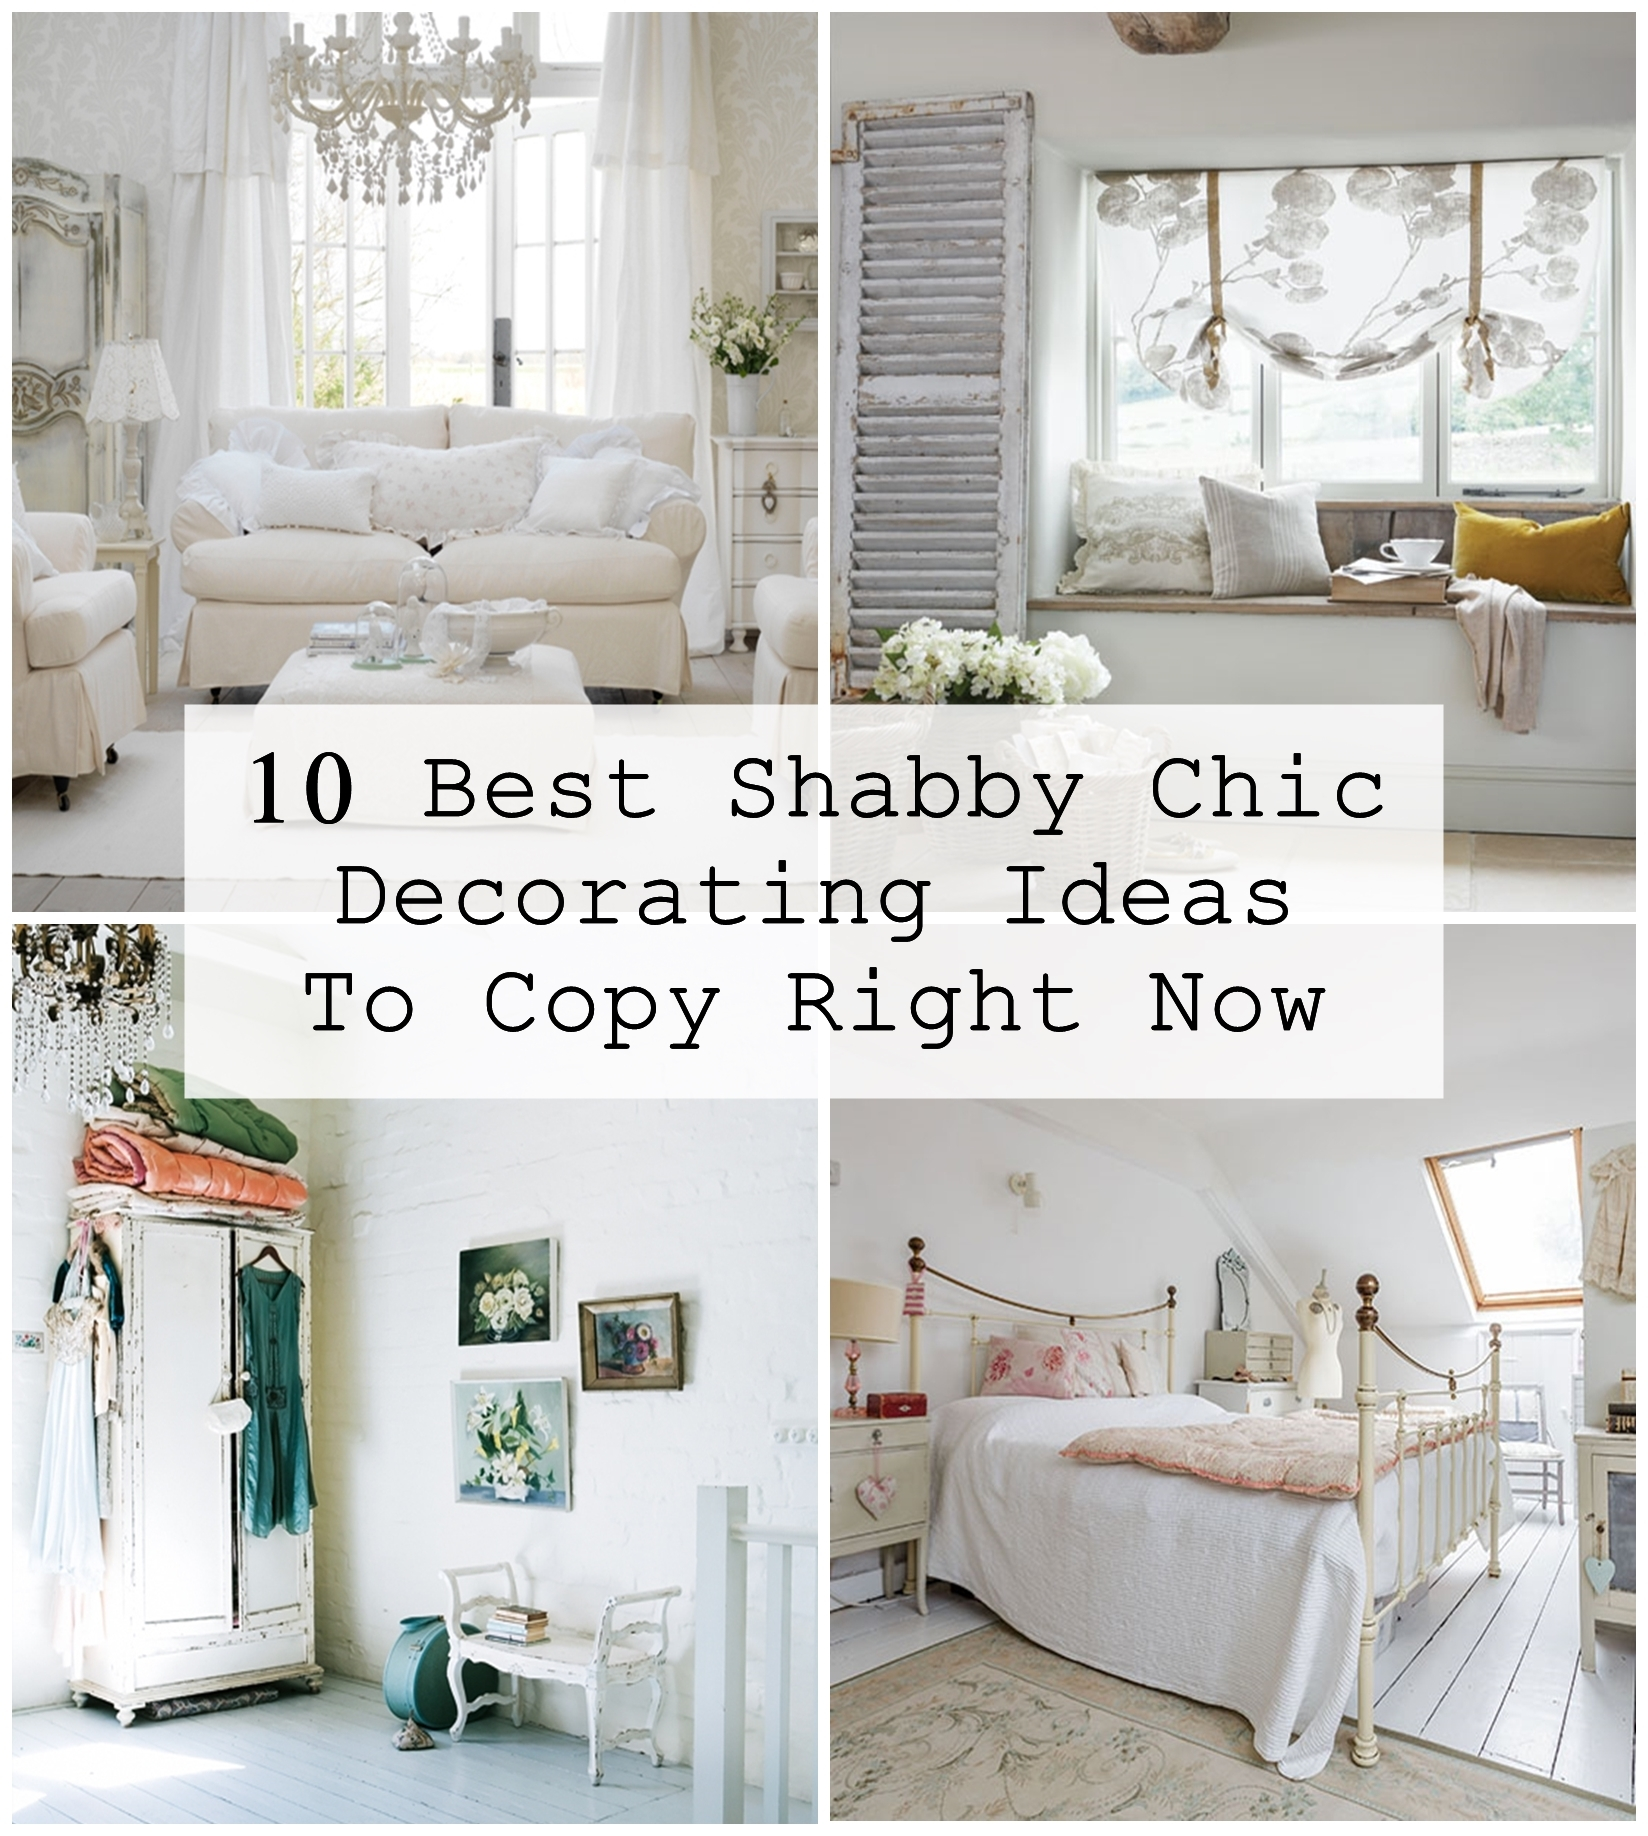 10 Best Shabby Chic Decorating Ideas To Copy Right Now - Matchness.com